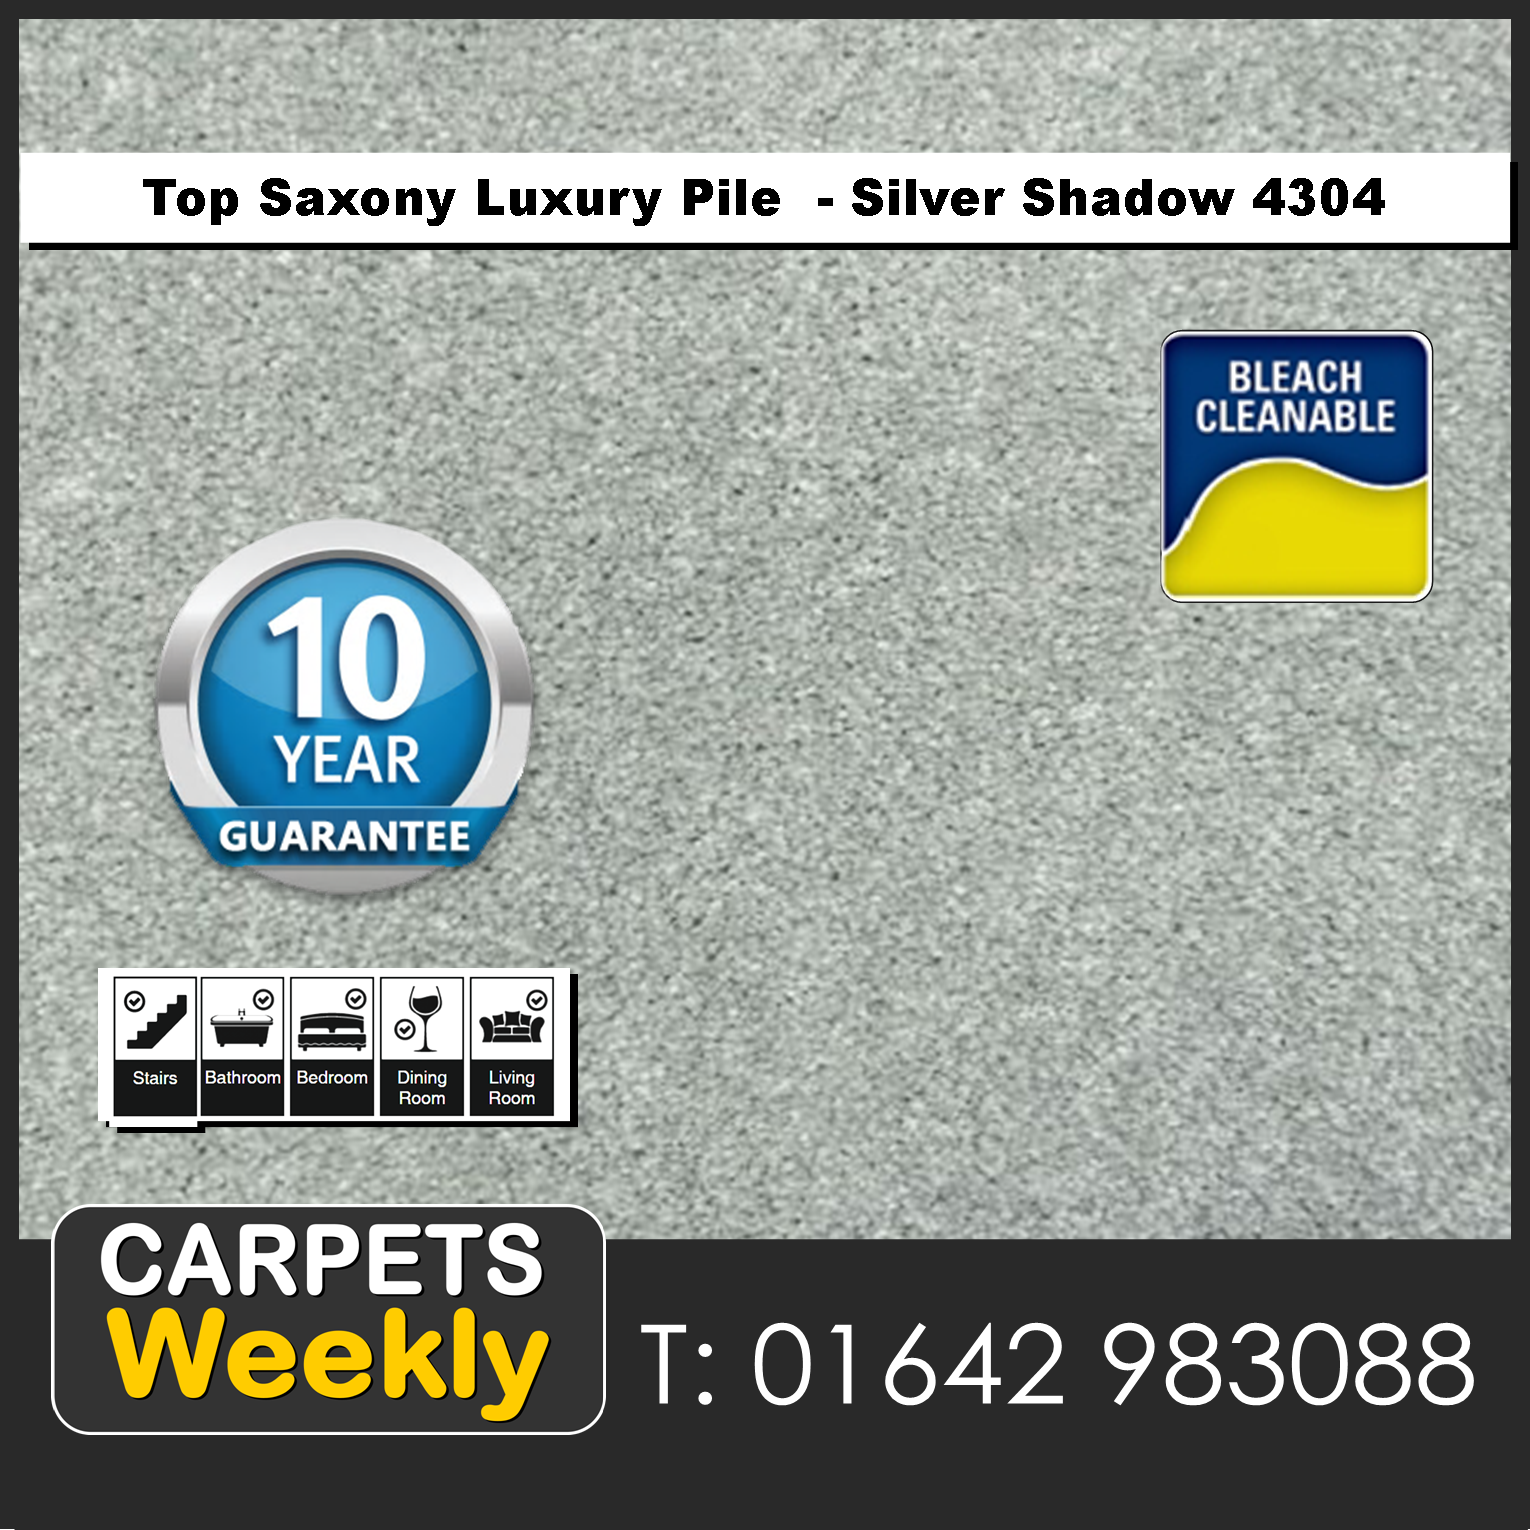 Top Saxony Silver Shadow - 4304 Carpet. Carpets Weekly